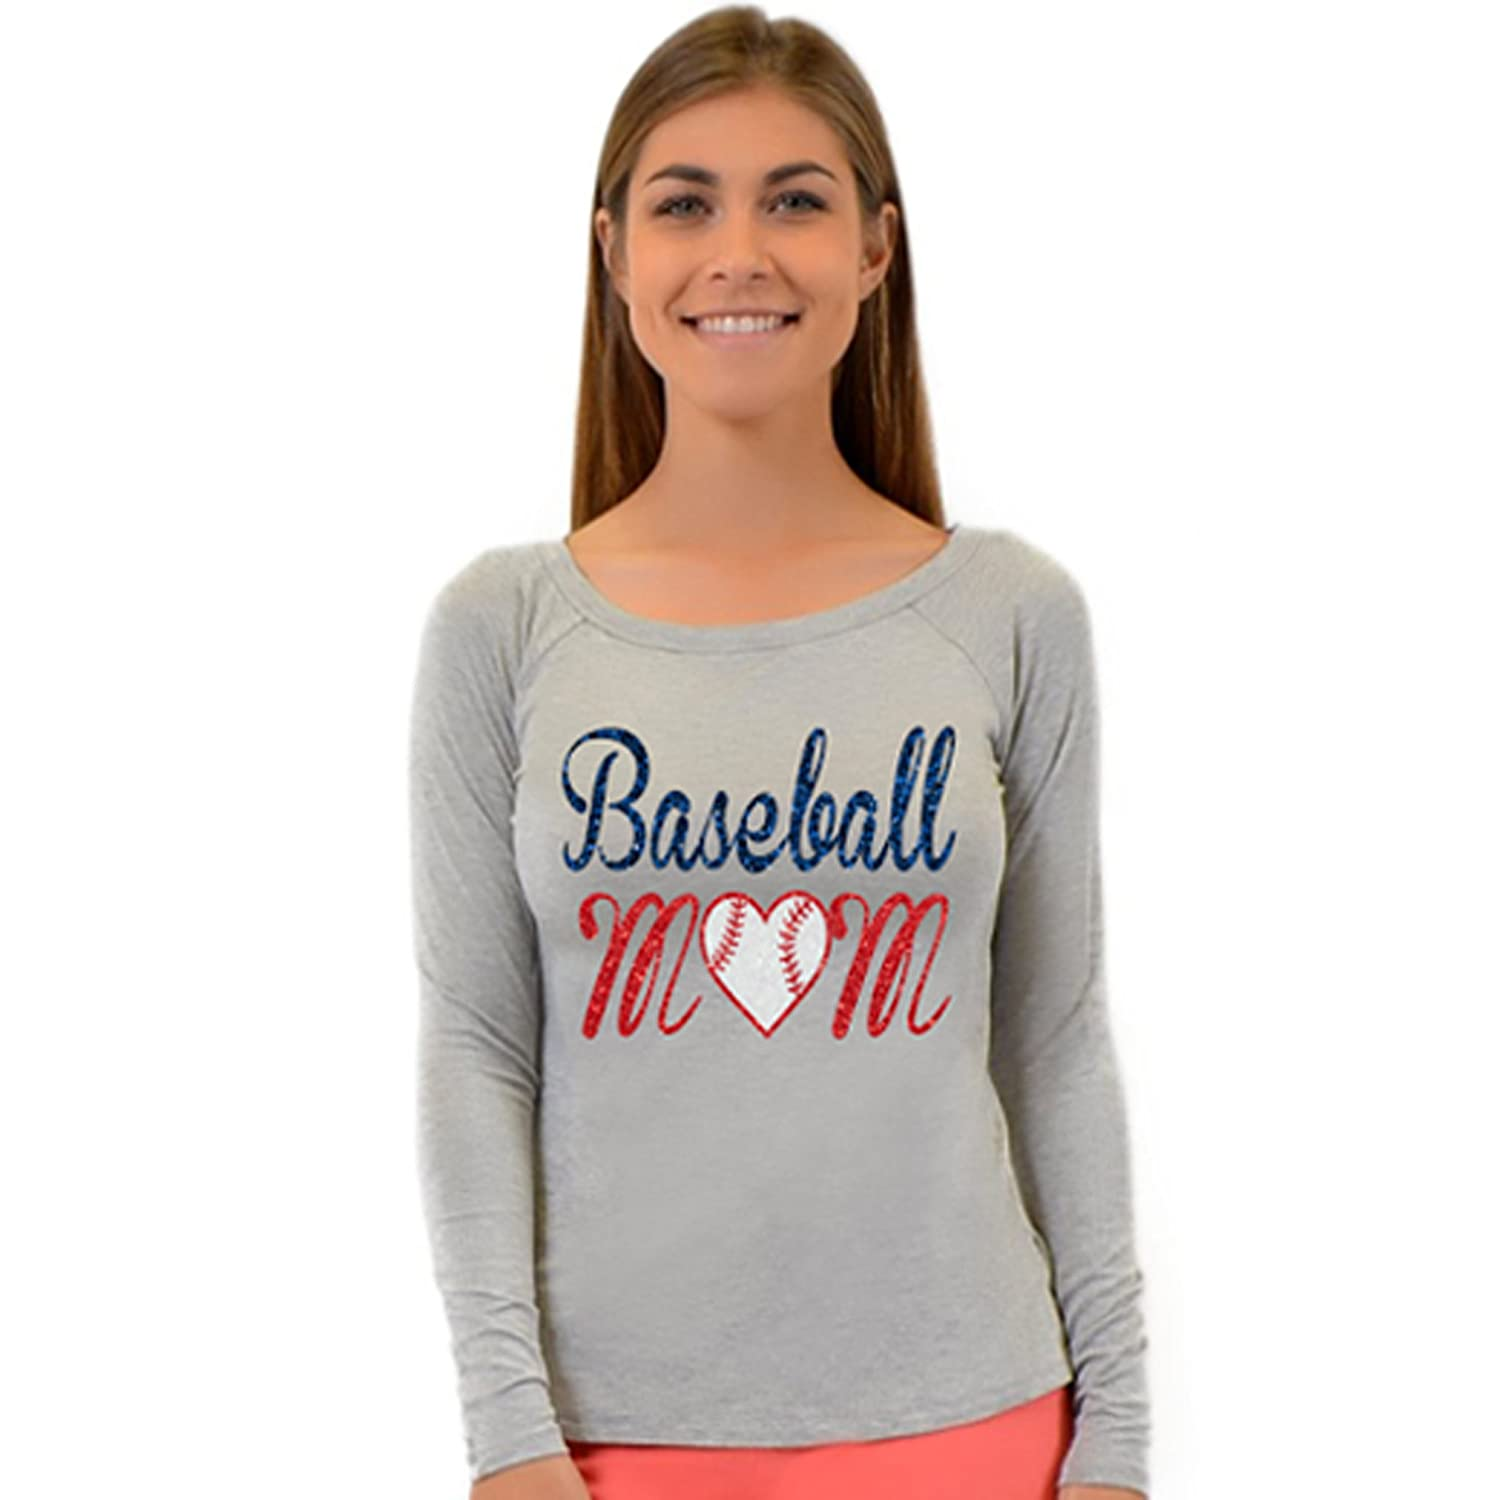 69cdfbdb97d7c Stretch Is Comfort Long Sleeve Baseball Mom Top at Amazon Women s Clothing  store